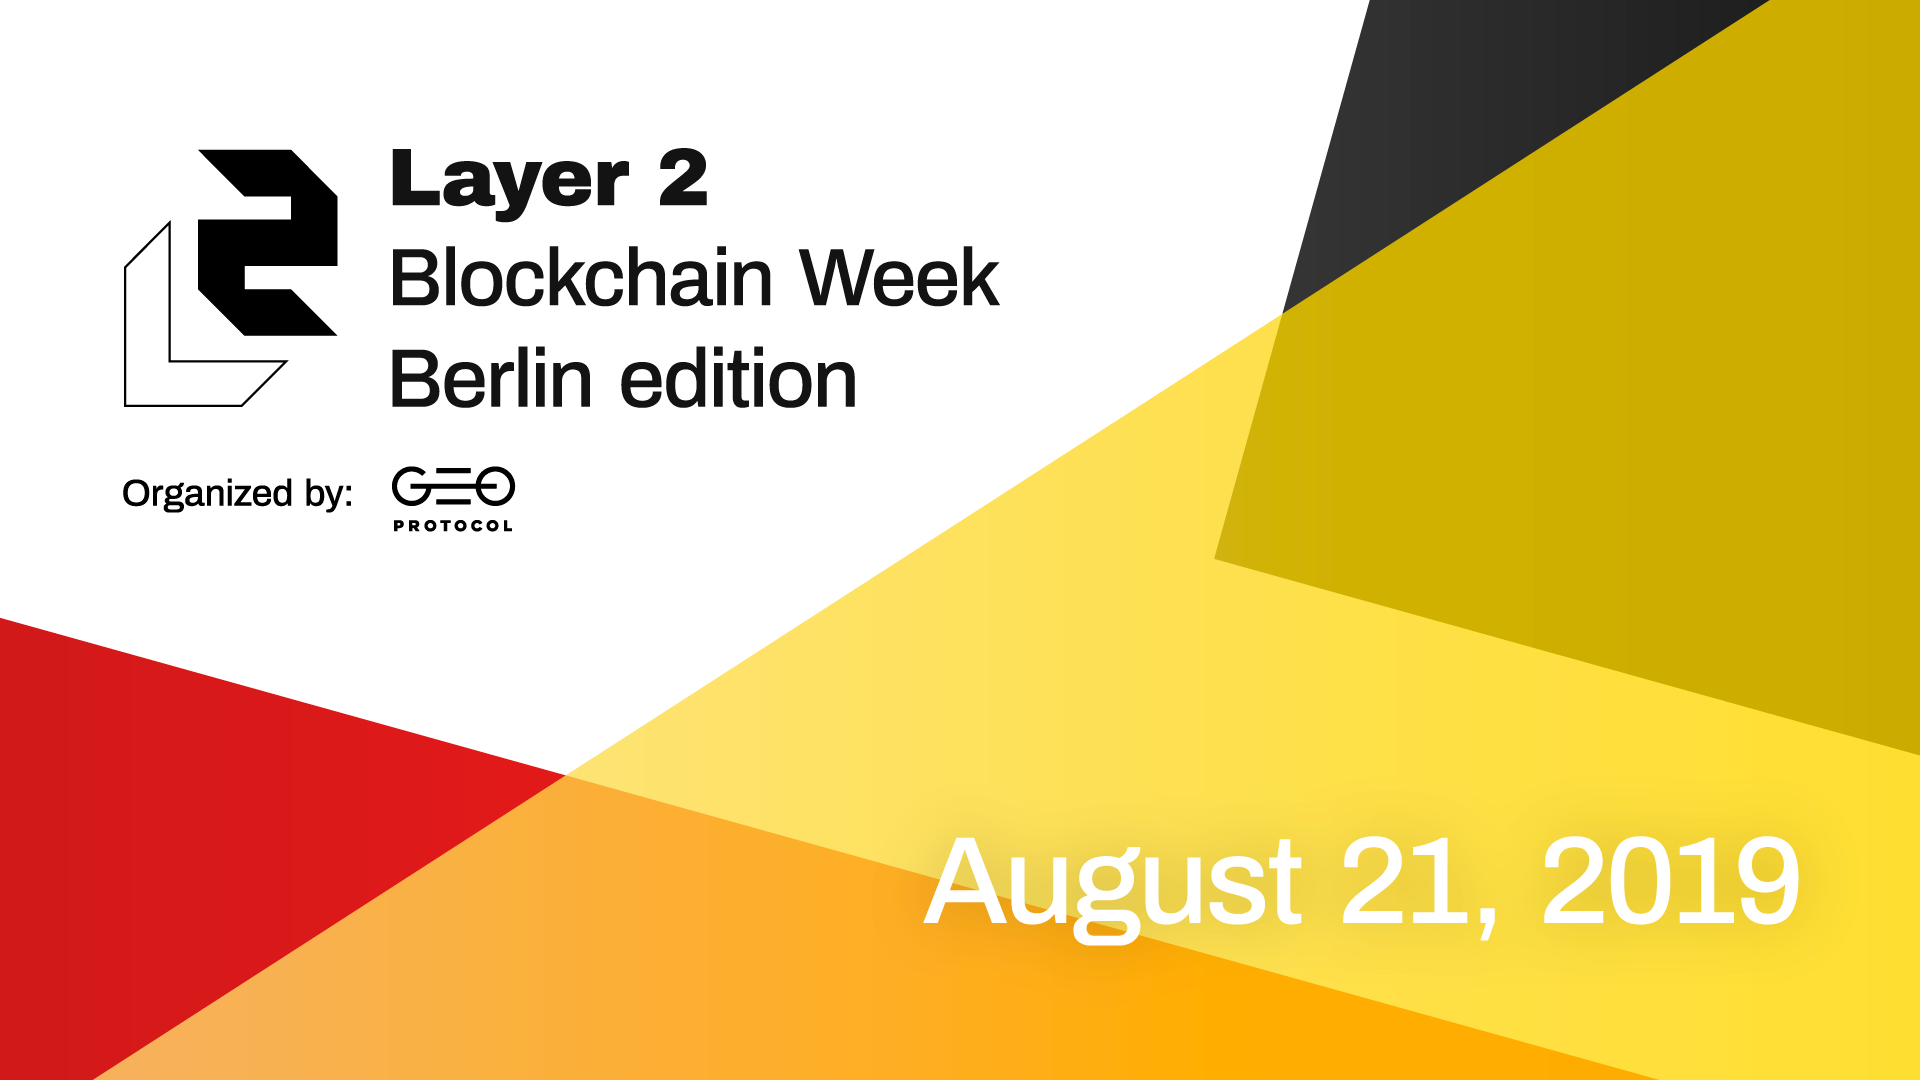 Layer Meetup, Blockchain Week, Berlin, event, conference, summit, bitcoin, blockchain, crypto, cryptocurrency, 2019, august